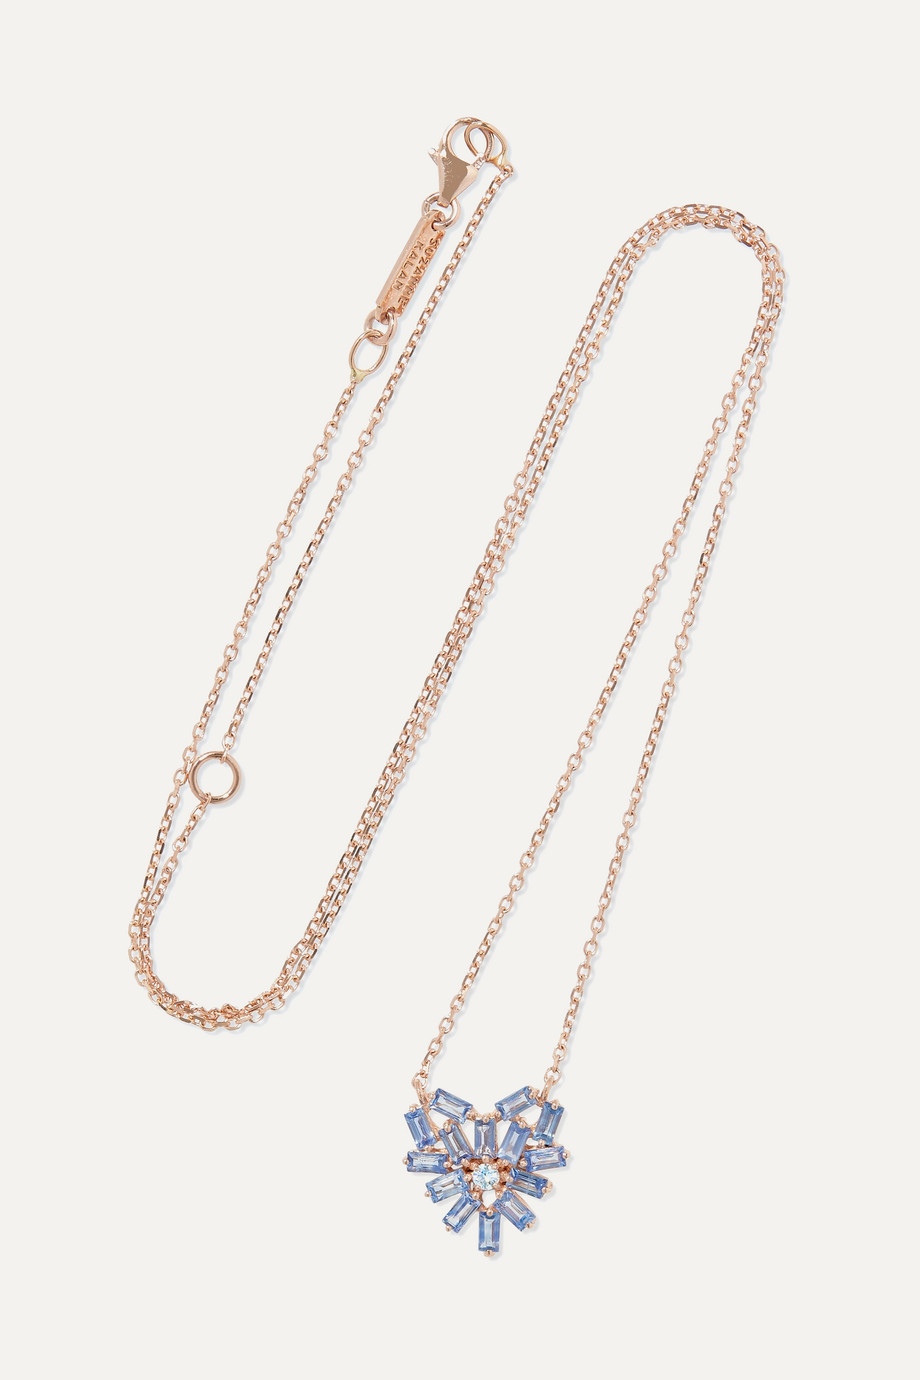 SUZANNE KALAN 18-karat rose gold, sapphire and diamond necklace